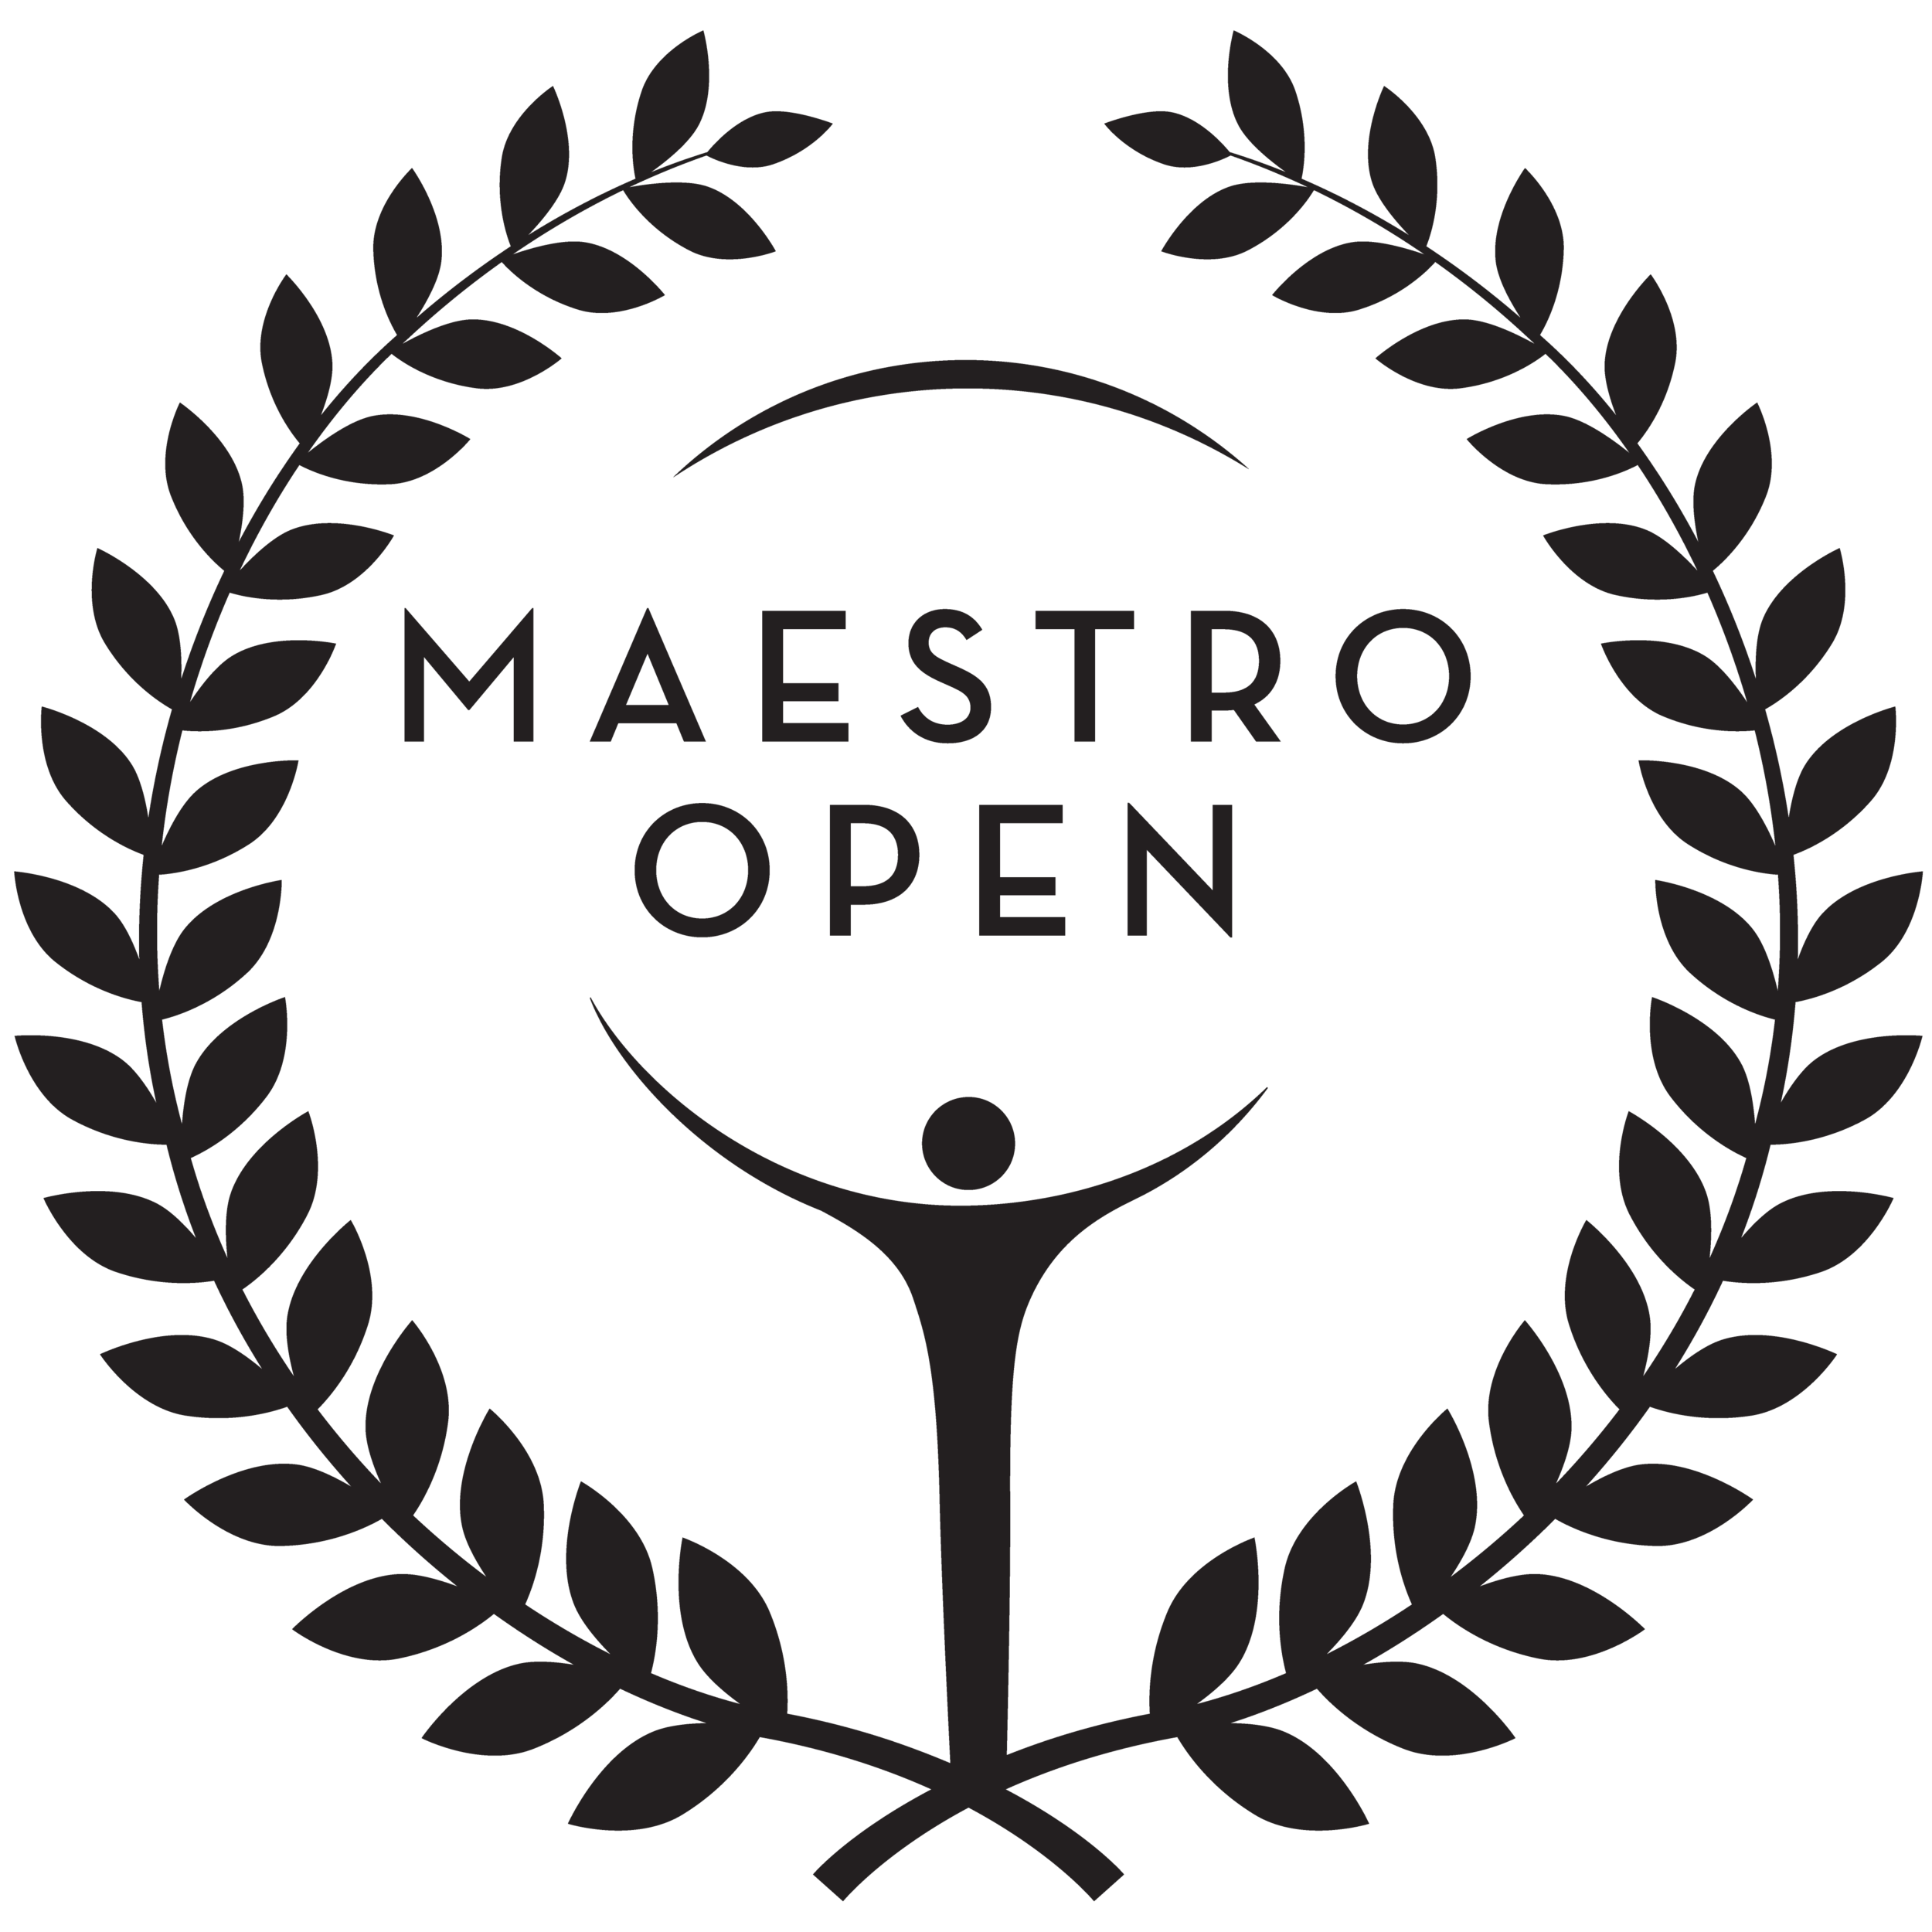 The  Maestro Open Presented by Garmong Construction Services  celebrates its 16th year by returning to  The Fort   Golf Course . This event's atmosphere and quality of play is well-suited for corporate partners to entertain clients and network with like-minded businesses that support the Indianapolis Symphony Orchestra.  The scramble begins with a shotgun start and golfers can expect to hear ISO musicians performing throughout the day, as well as great food and libation stations, on the course. Following the day's rounds, there will be an awards dinner, sponsored by Ruth's Chris Steakhouse, in the clubhouse and a dozen roses for each golfer to take home with them.